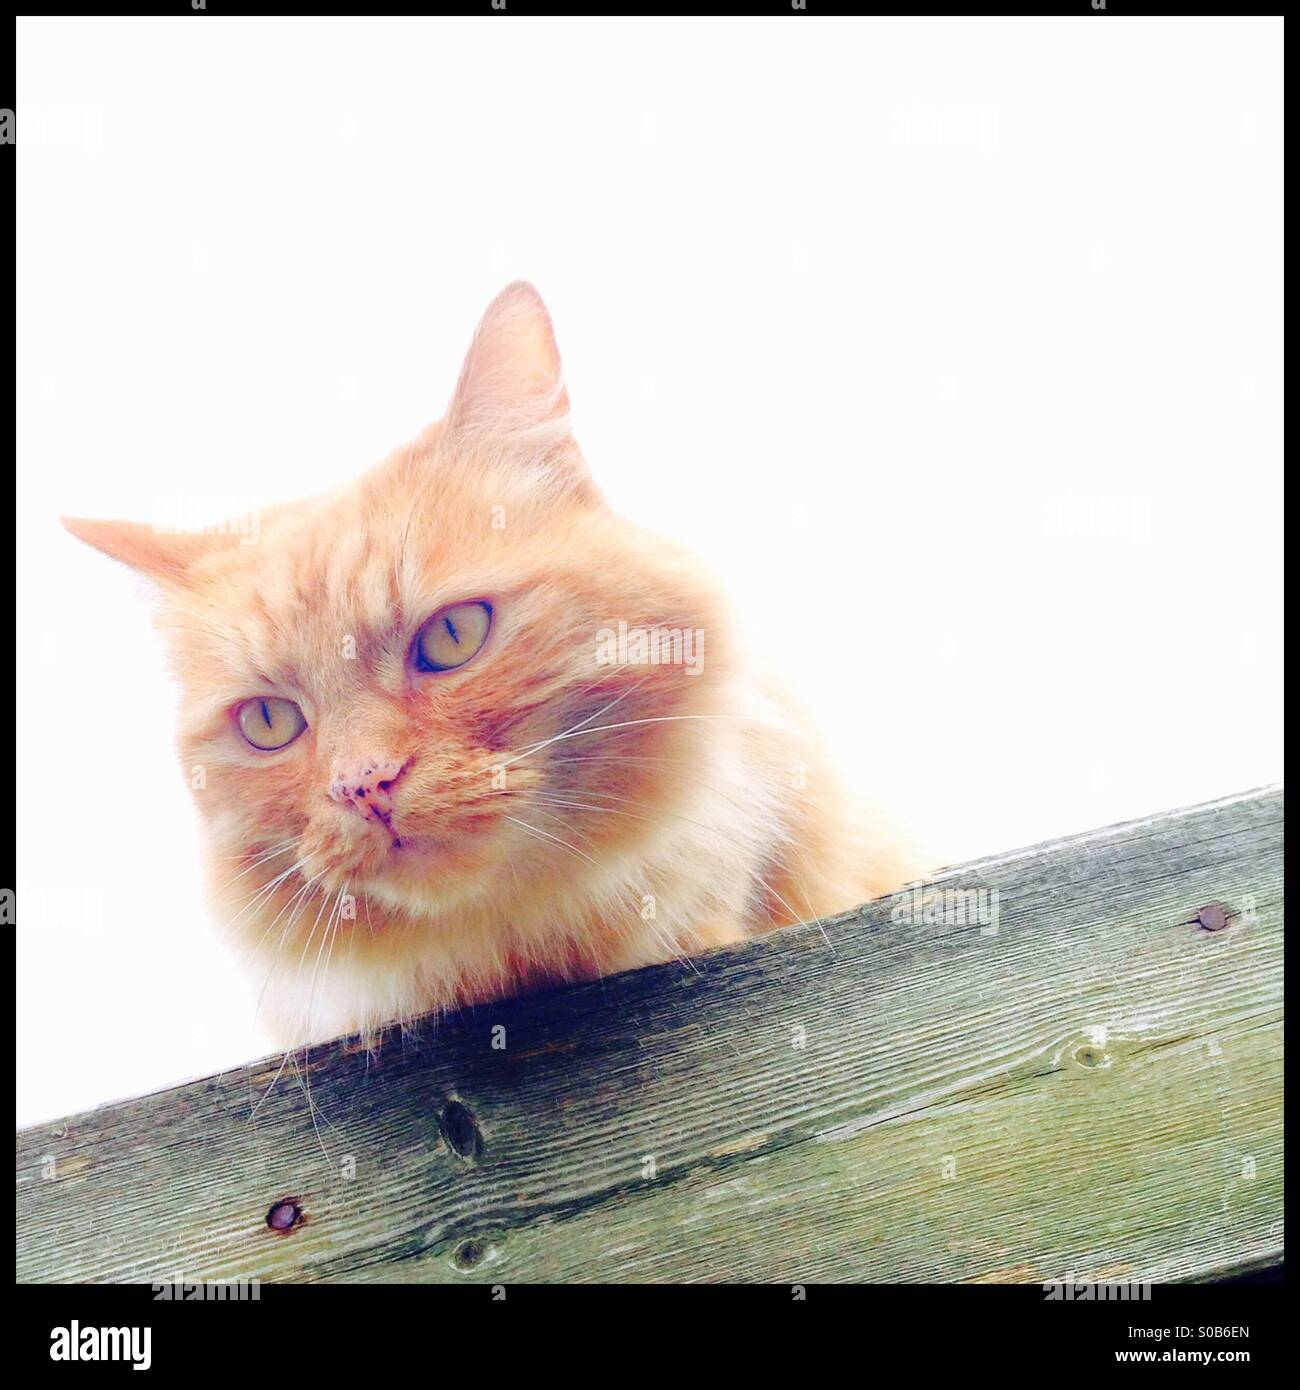 Cat peering over the edge of a rooftop - Stock Image